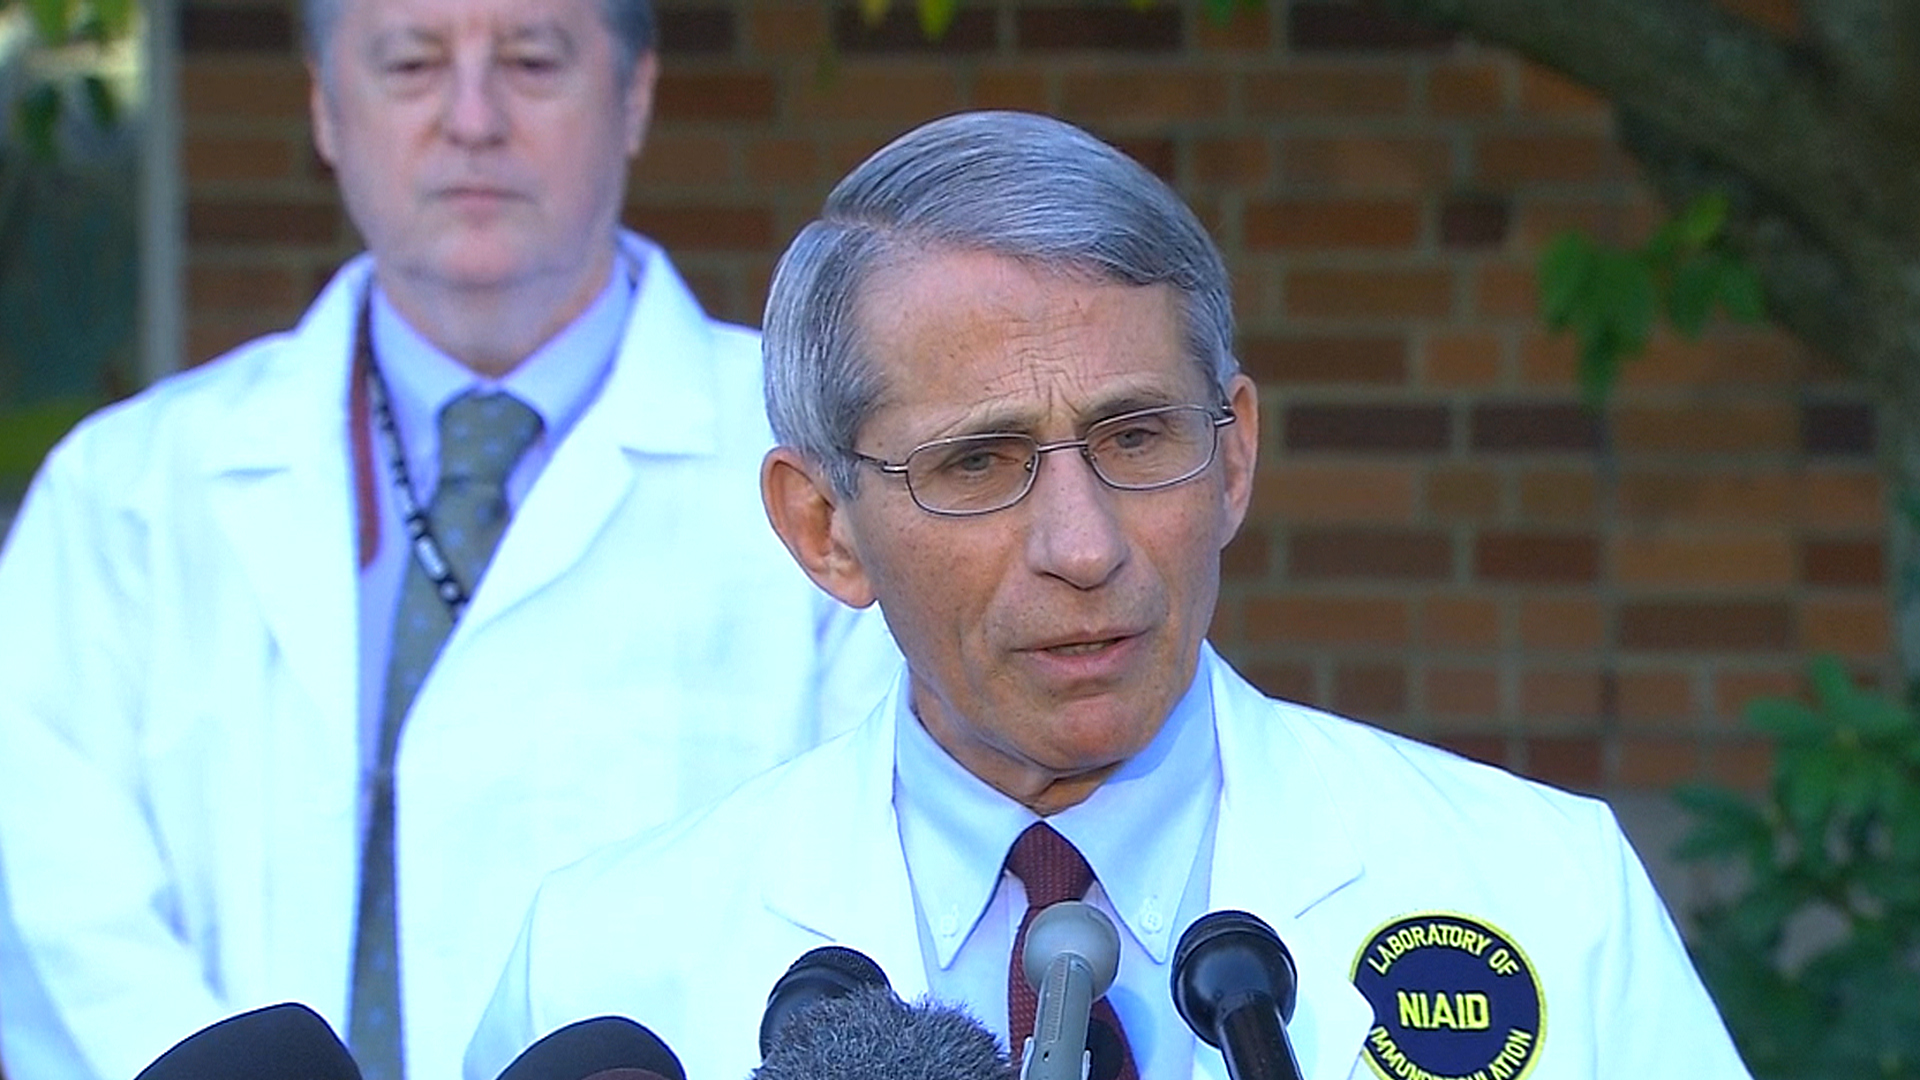 U.S. Nurse Being Watched at NIH for Ebola